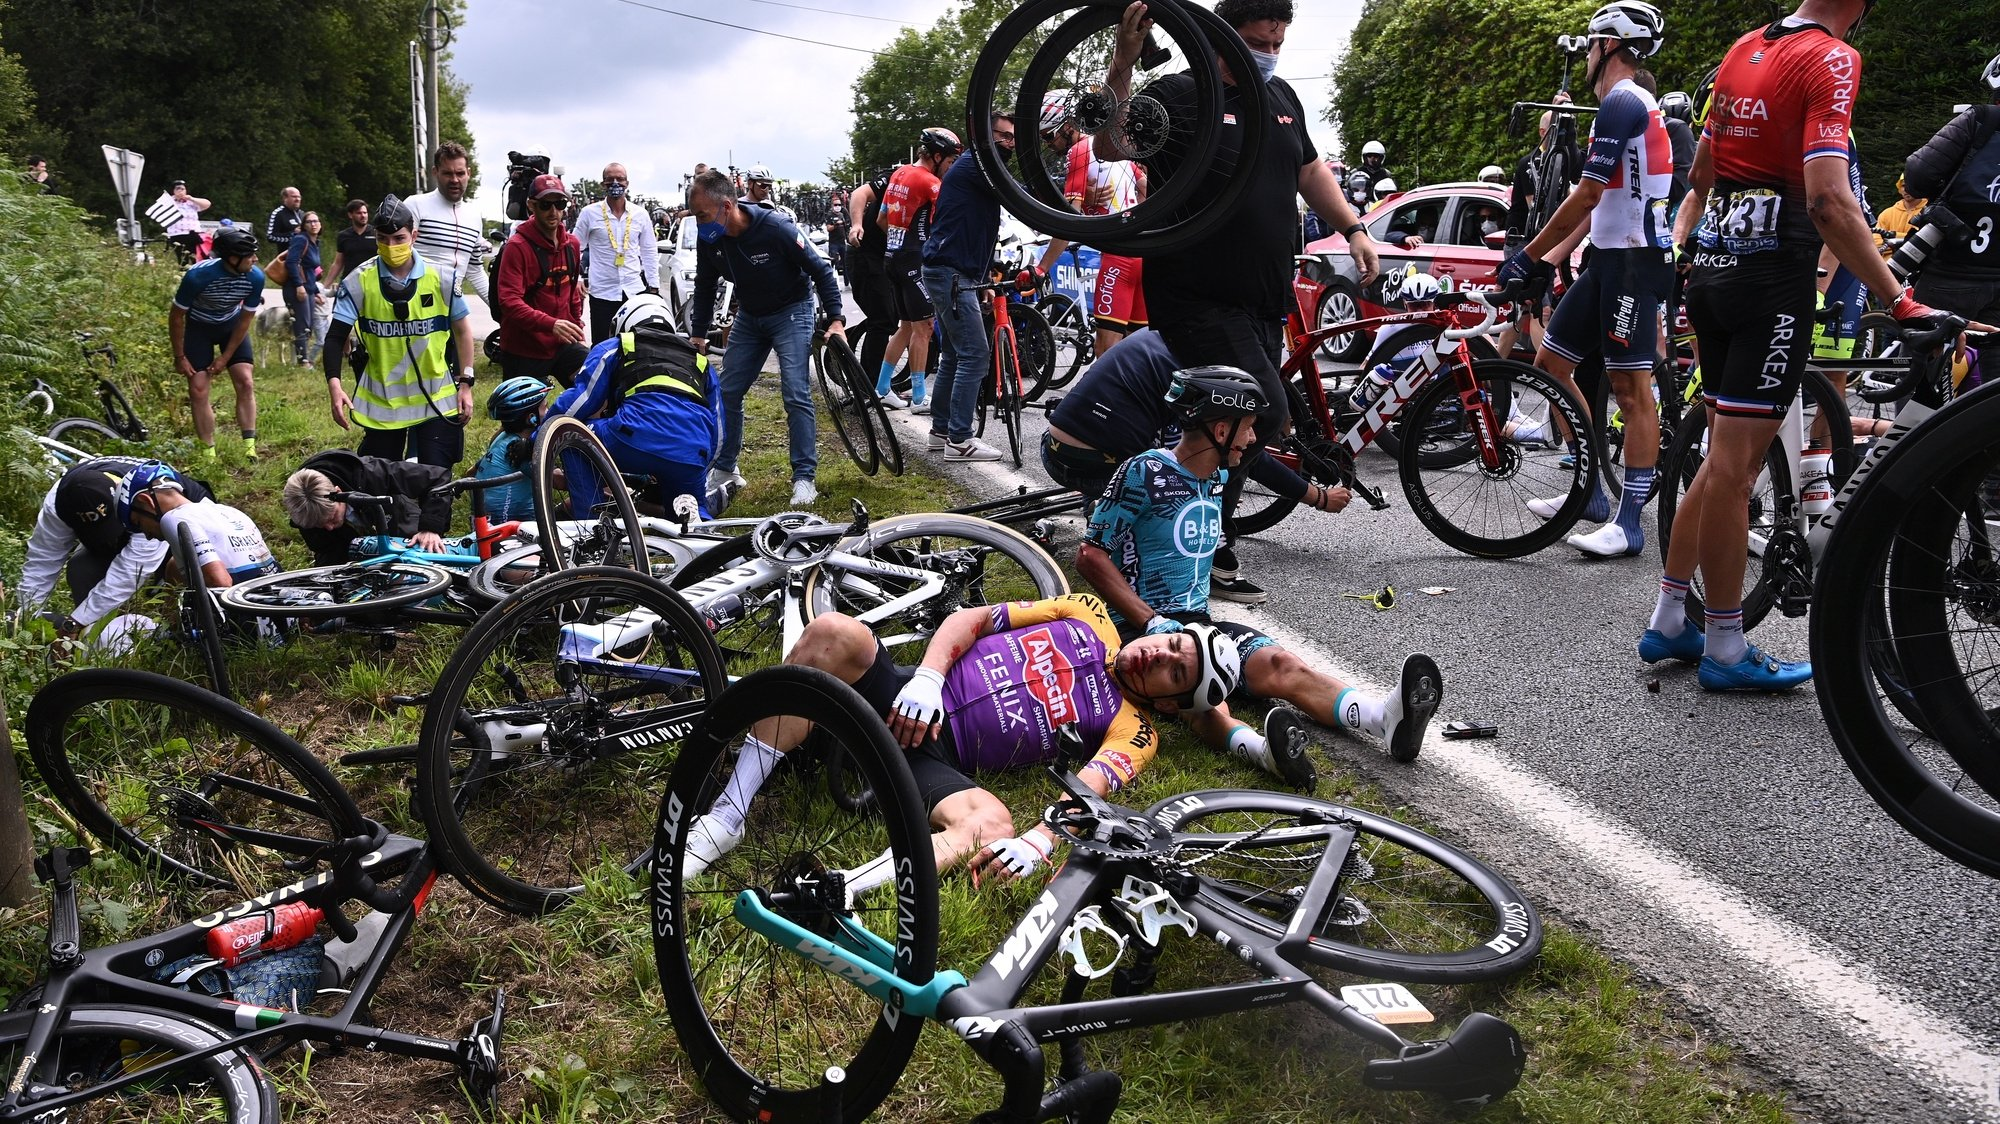 epa09303517 Riders react after a mass crash during the 1st stage of the Tour de France 2021 over 197.8km from Brest to Landerneau, France, 26 June 2021.  EPA/Anne-Christine Poujoulat / POOL